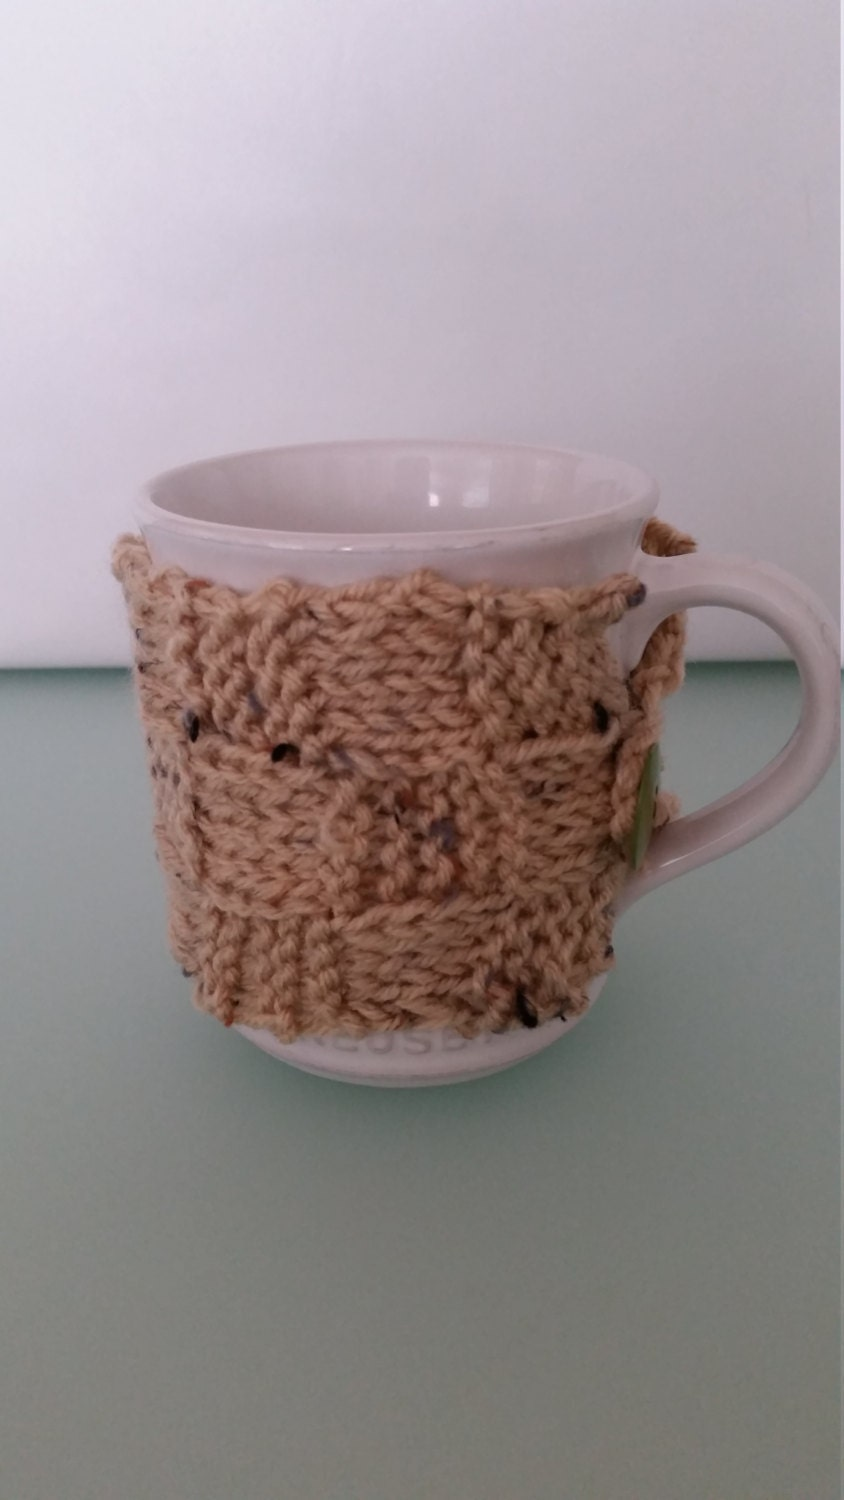 Coffee mug cozy knitted in basket weave pattern